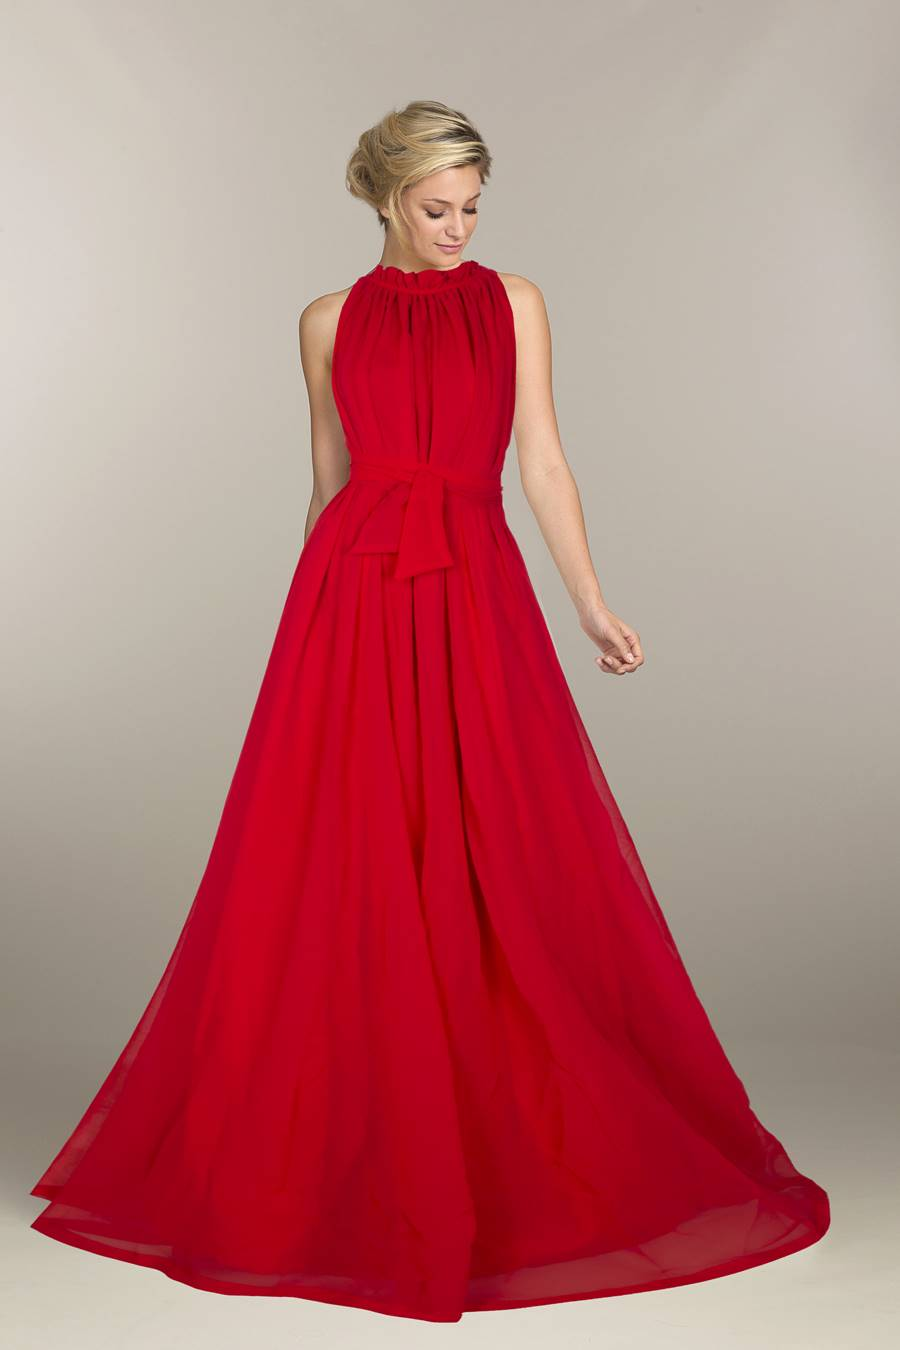 Exclusive Designer Royal Gown #G32 Dyna Red, Buy Gowns online, Pure ...